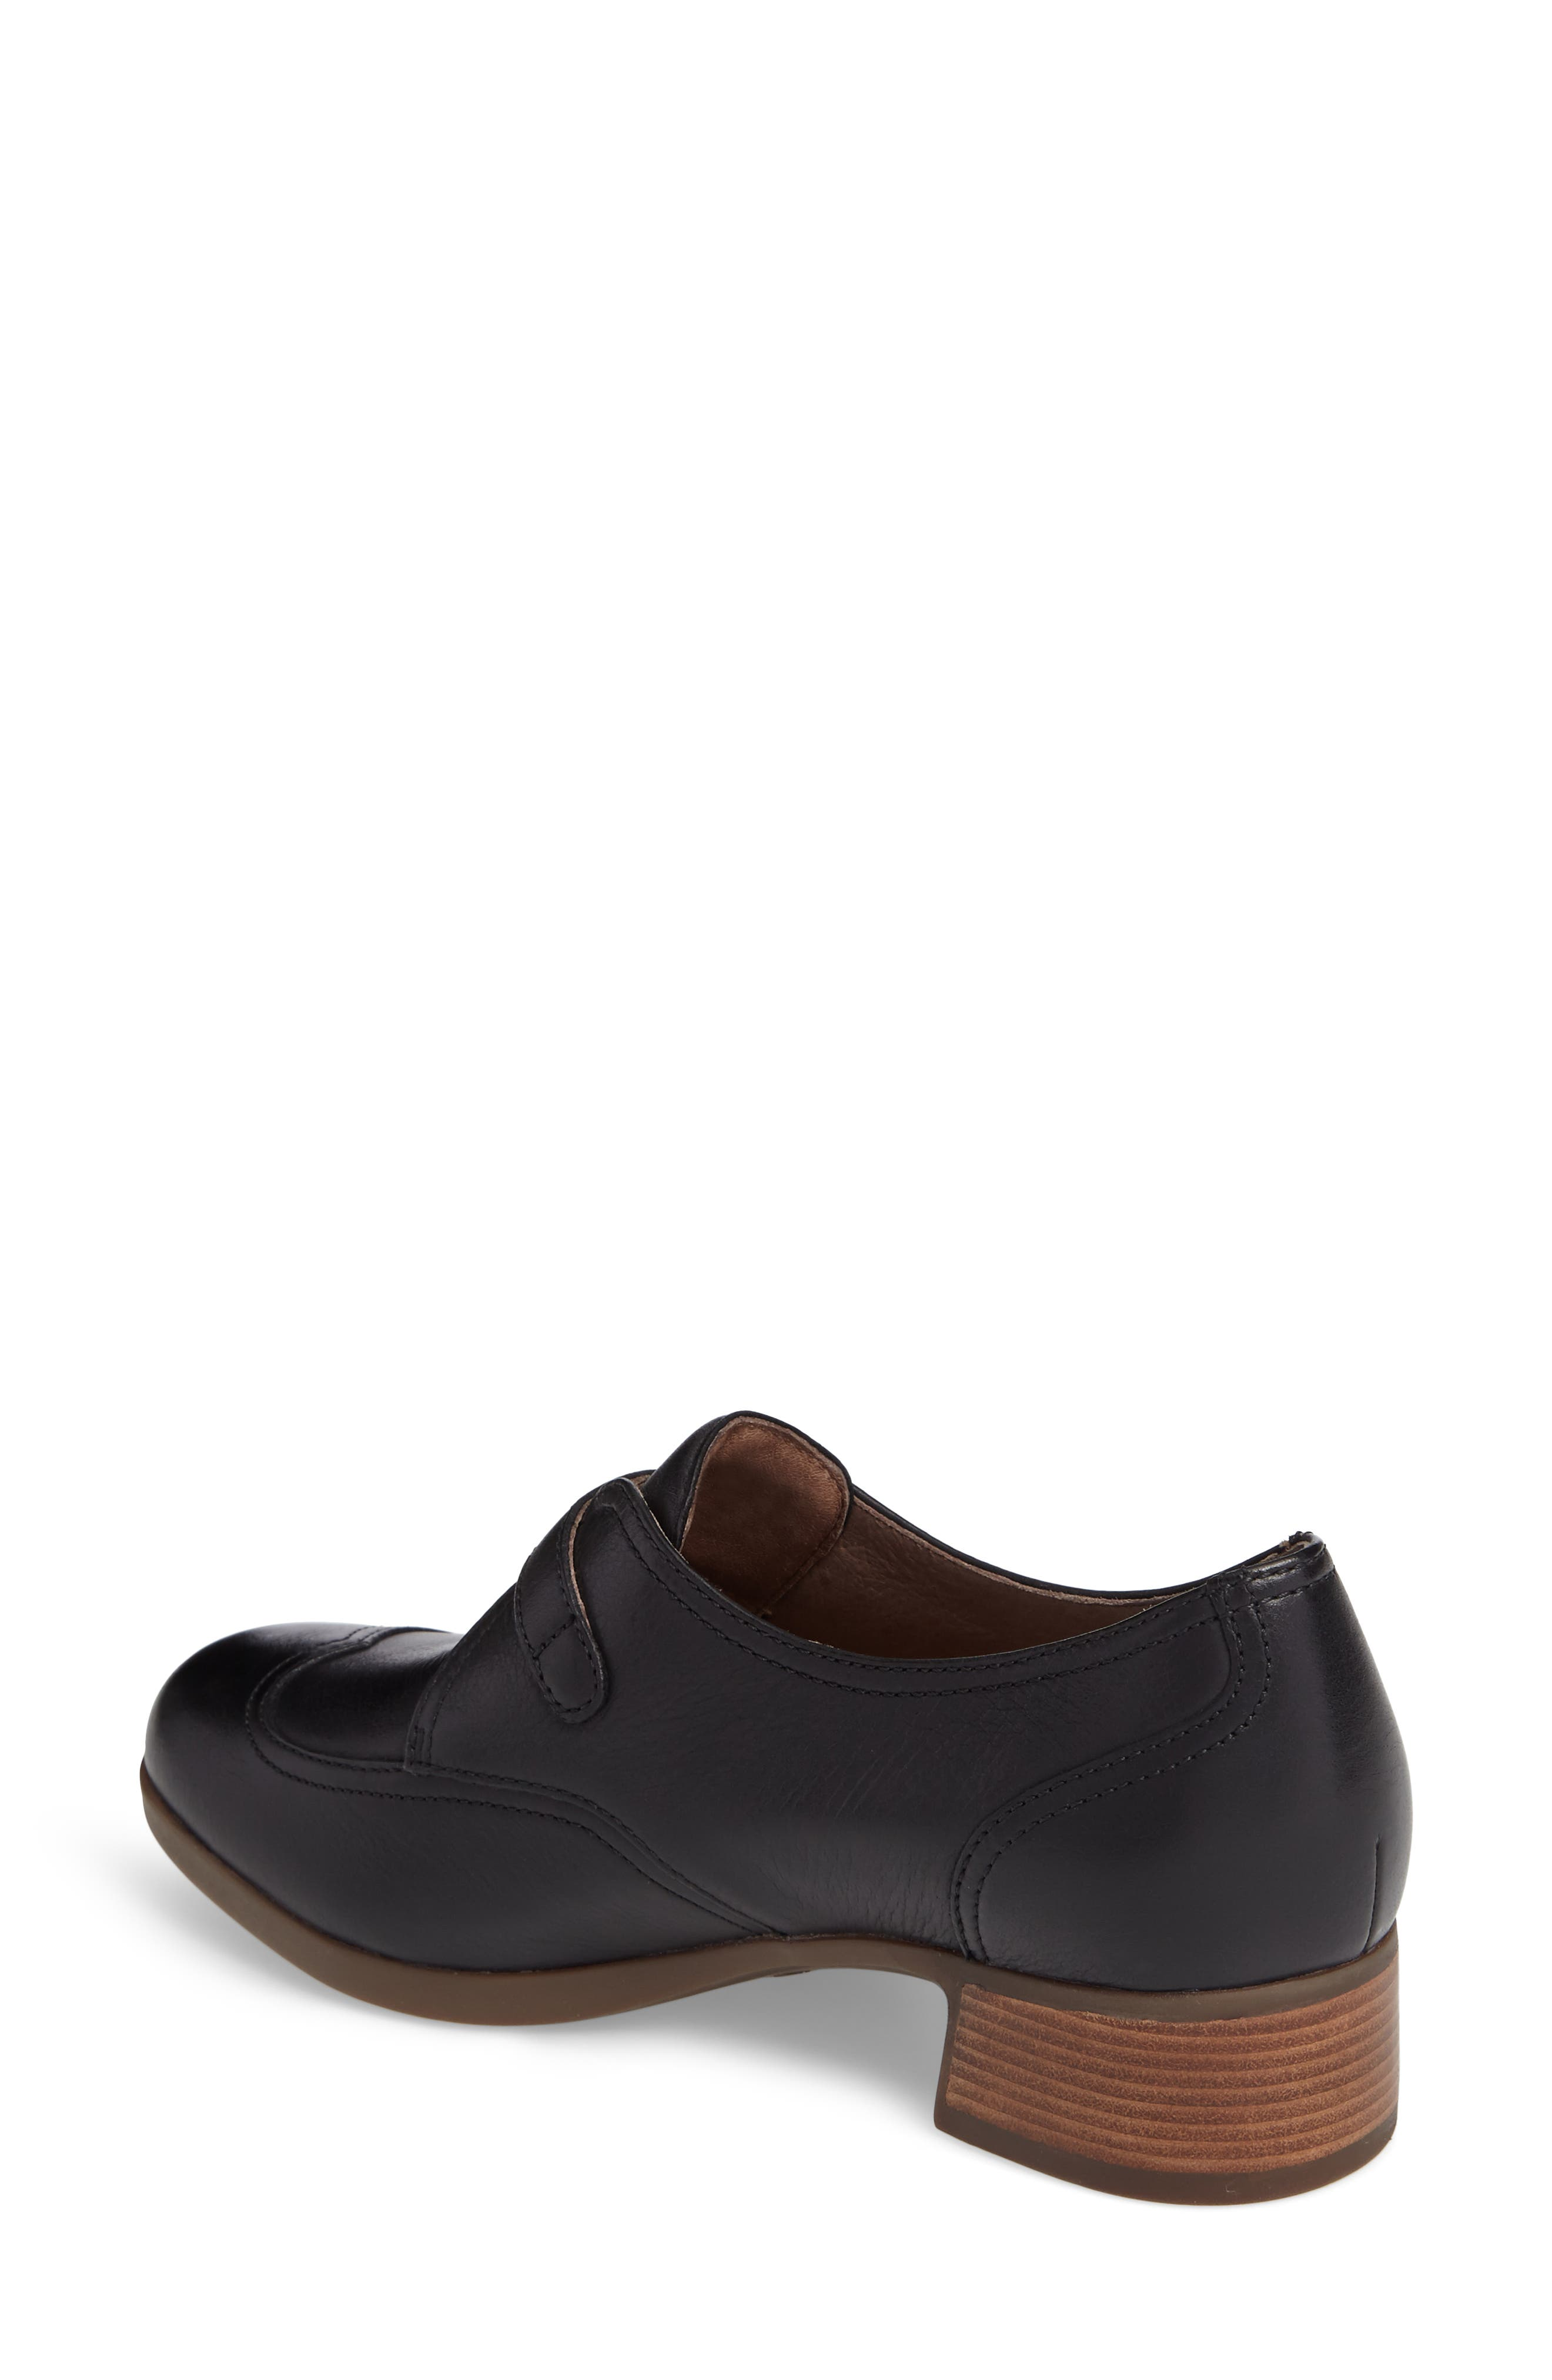 Alternate Image 2  - Dansko Livie Wingtip Oxford (Women)